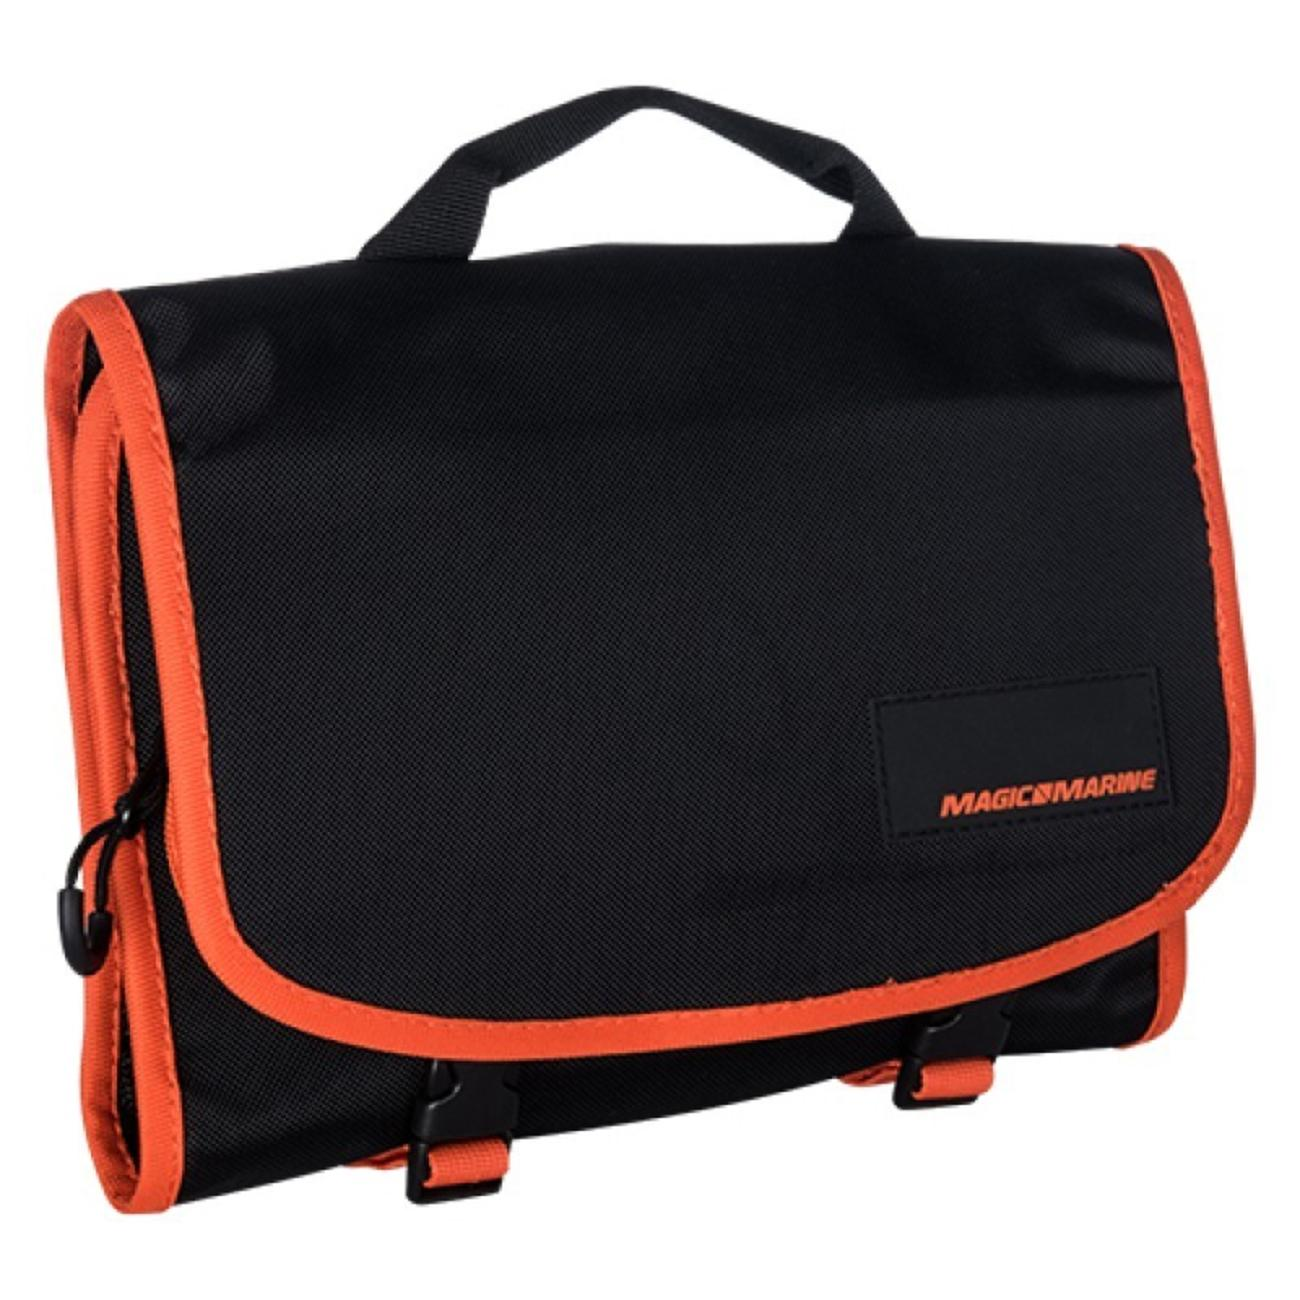 Private Kit Toiletry Bag トイレタリーバッグ トラベルポーチ